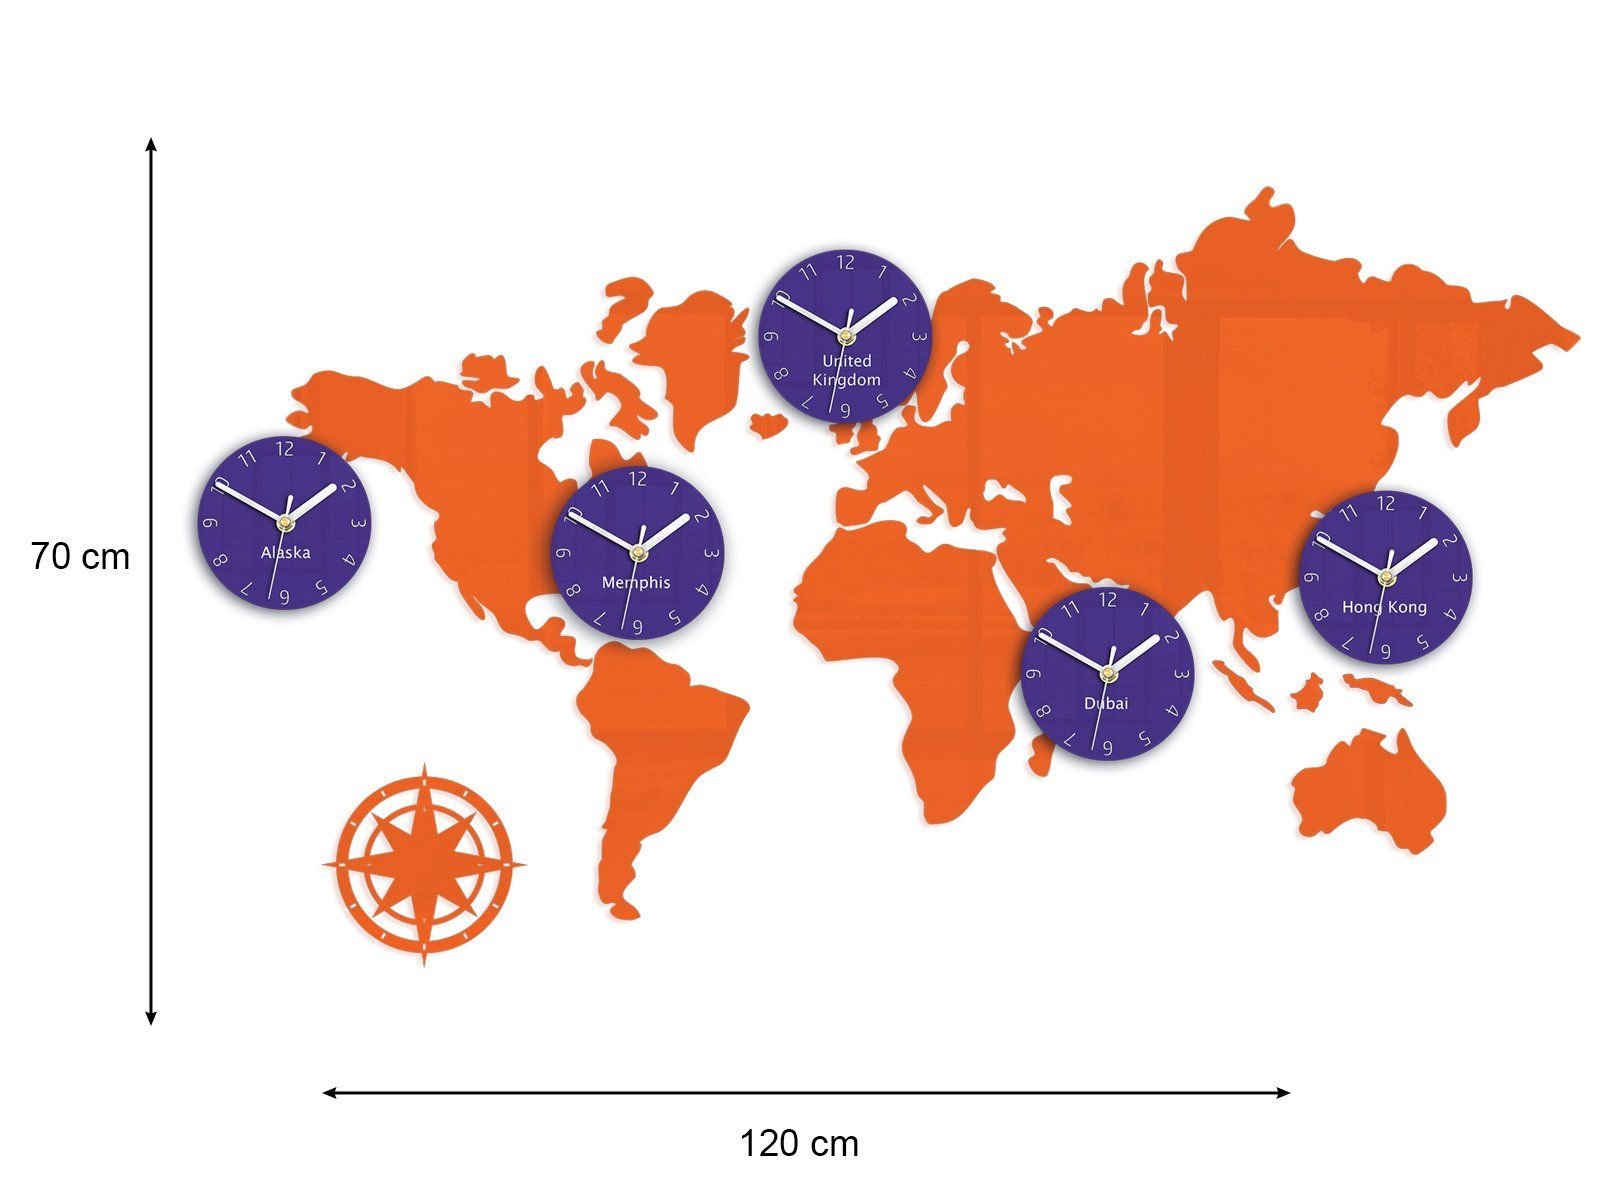 clock Orange world map with 5 time zones Hong Kong